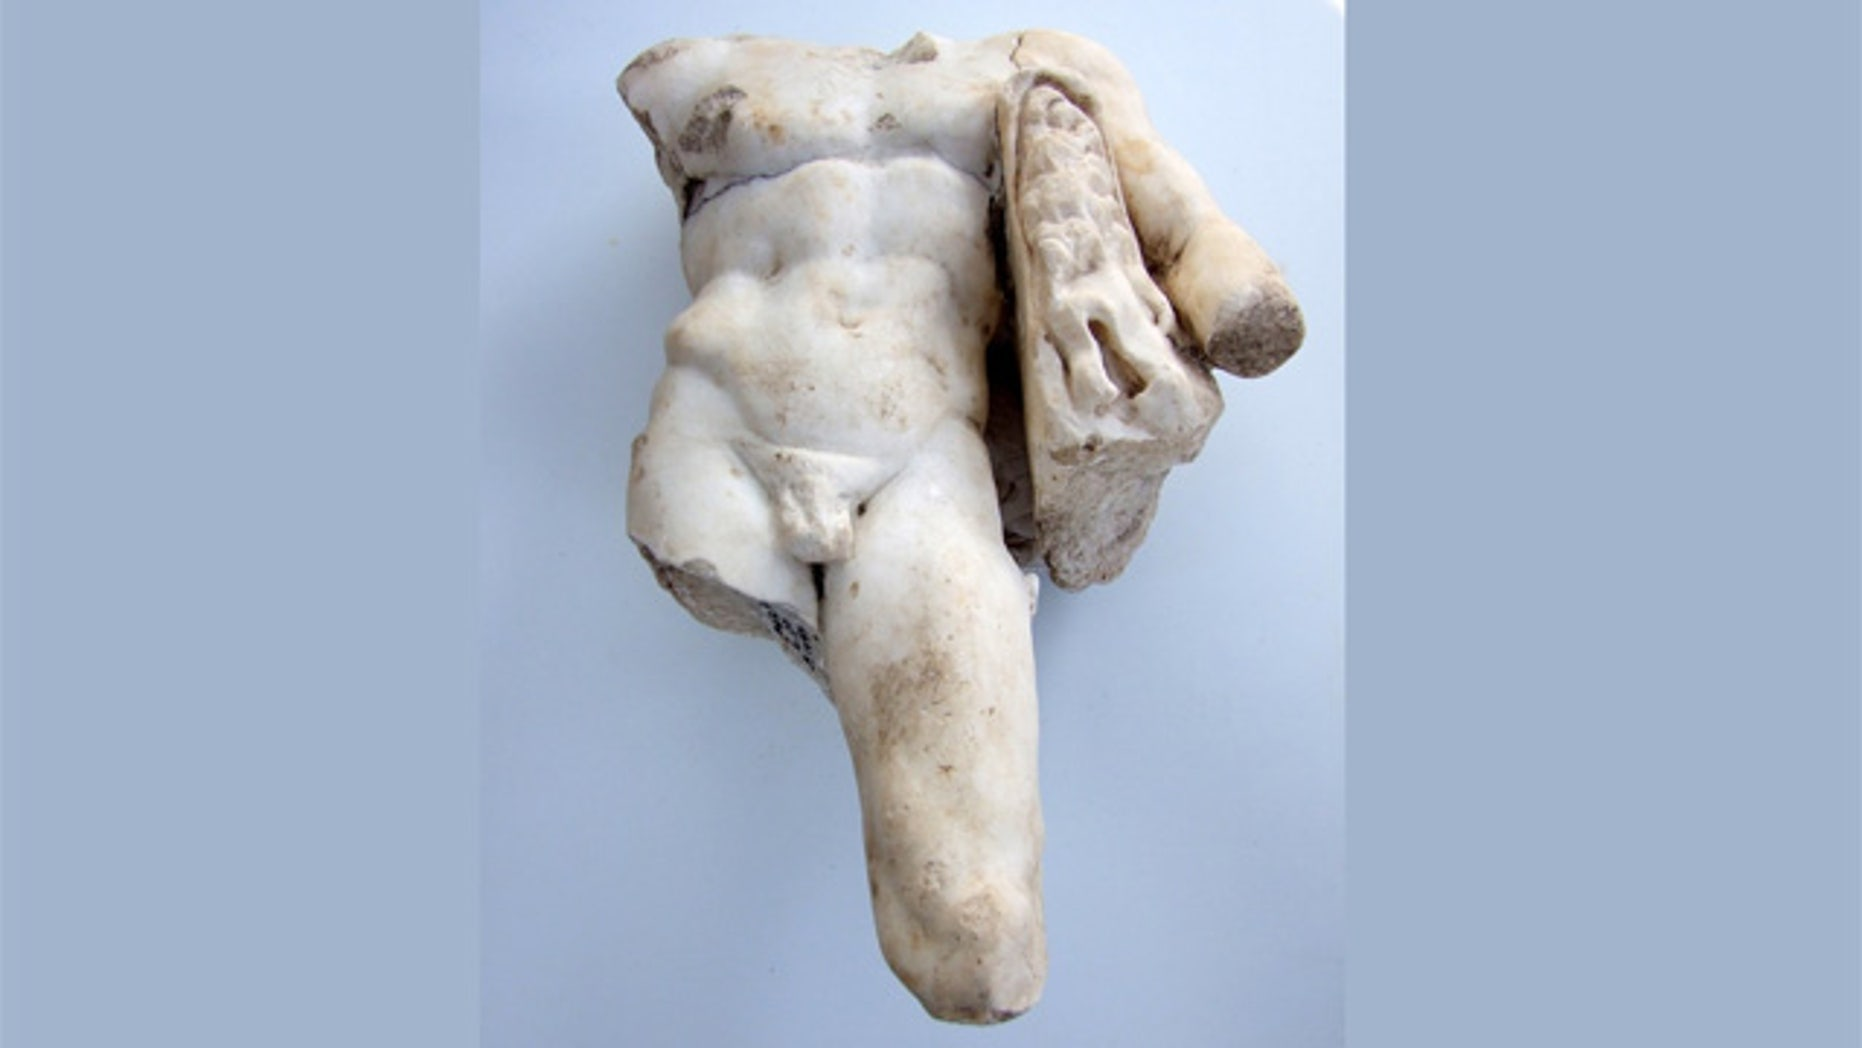 A marble statue of Hercules found at the site of a Roman bathhouse in Israel on Aug. 15.